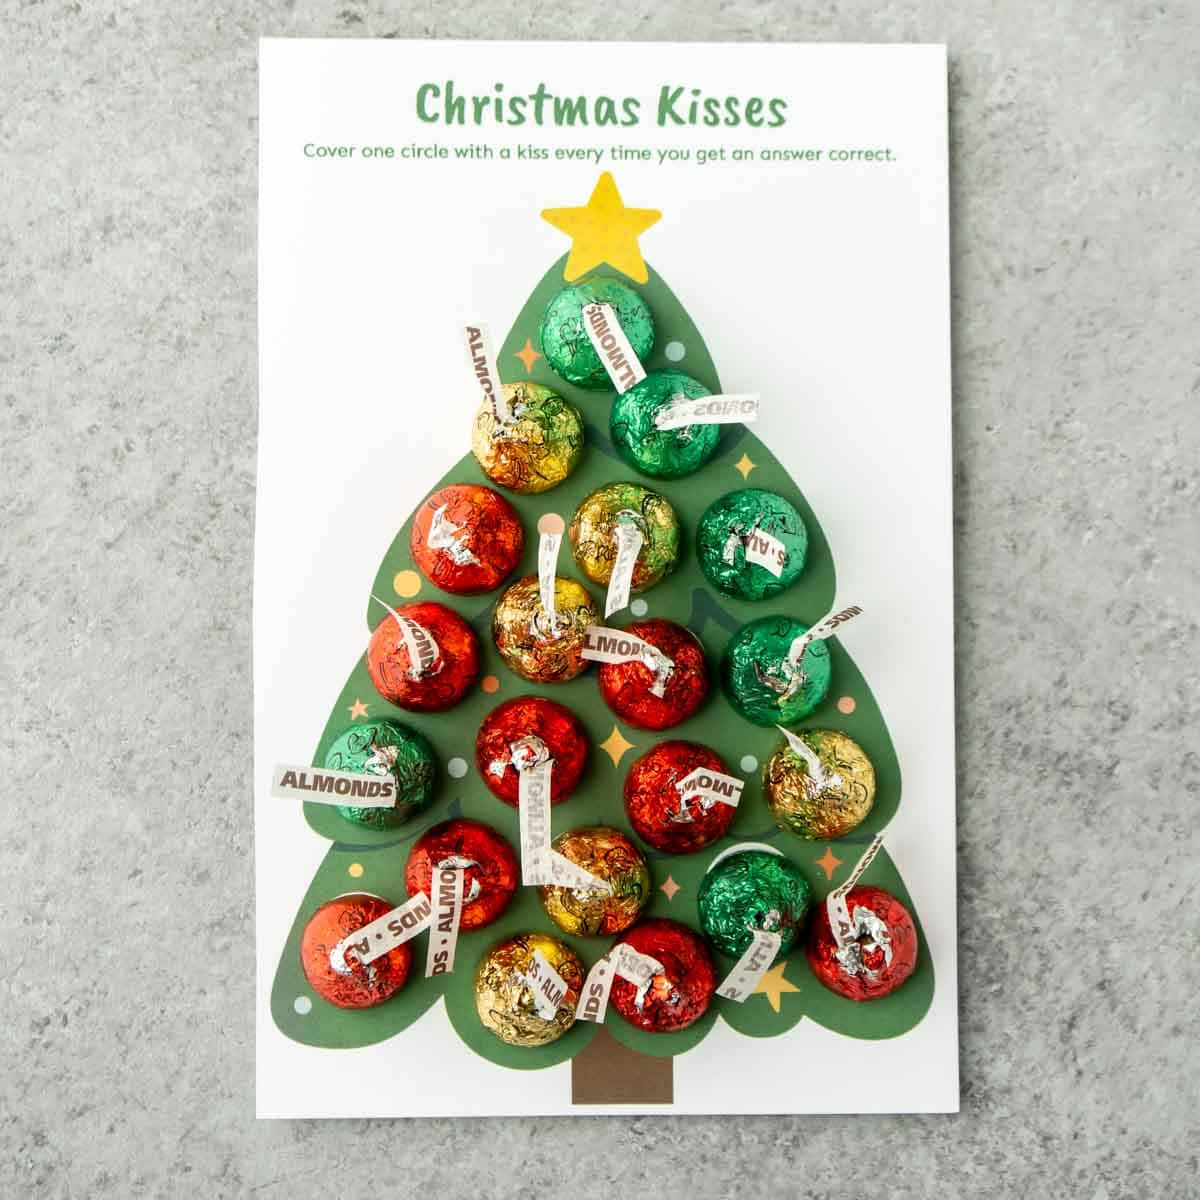 Christmas kisses Christmas trivia game with Hershey's kisses on top